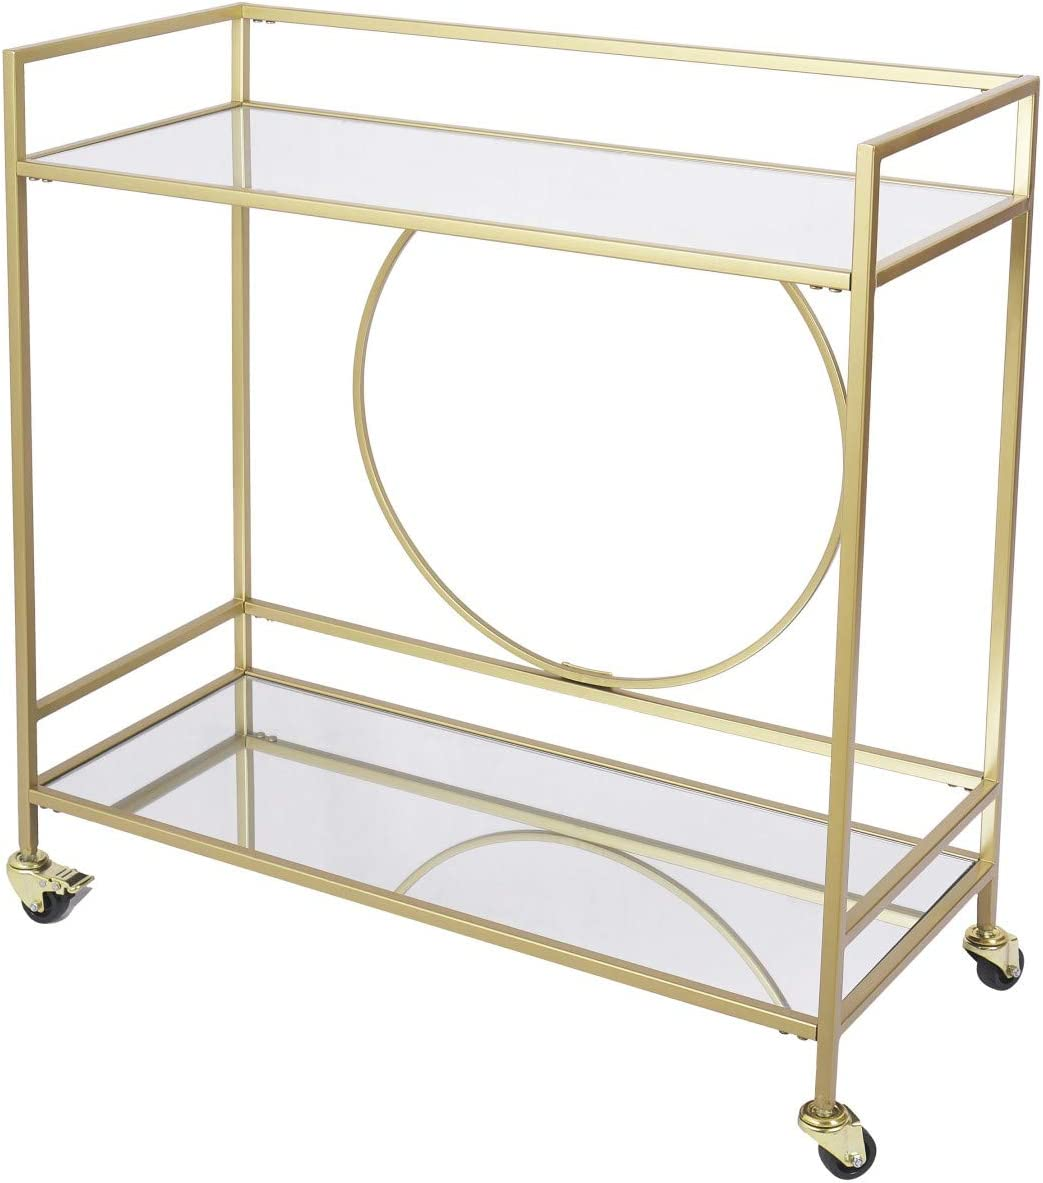 Bar Cart with 2 Mirrored Shelves, Durable Wine Cart with Casters, Suitable for Kitchen, Club, Living Room, Antique Gold Finish (36x15x38inch Gold)